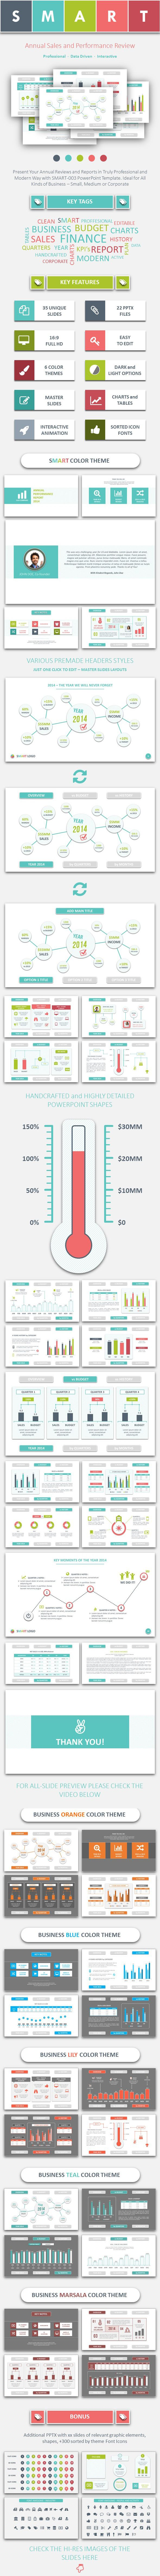 SMART-003 – Annual Review PowerPoint Template - Finance PowerPoint Templates